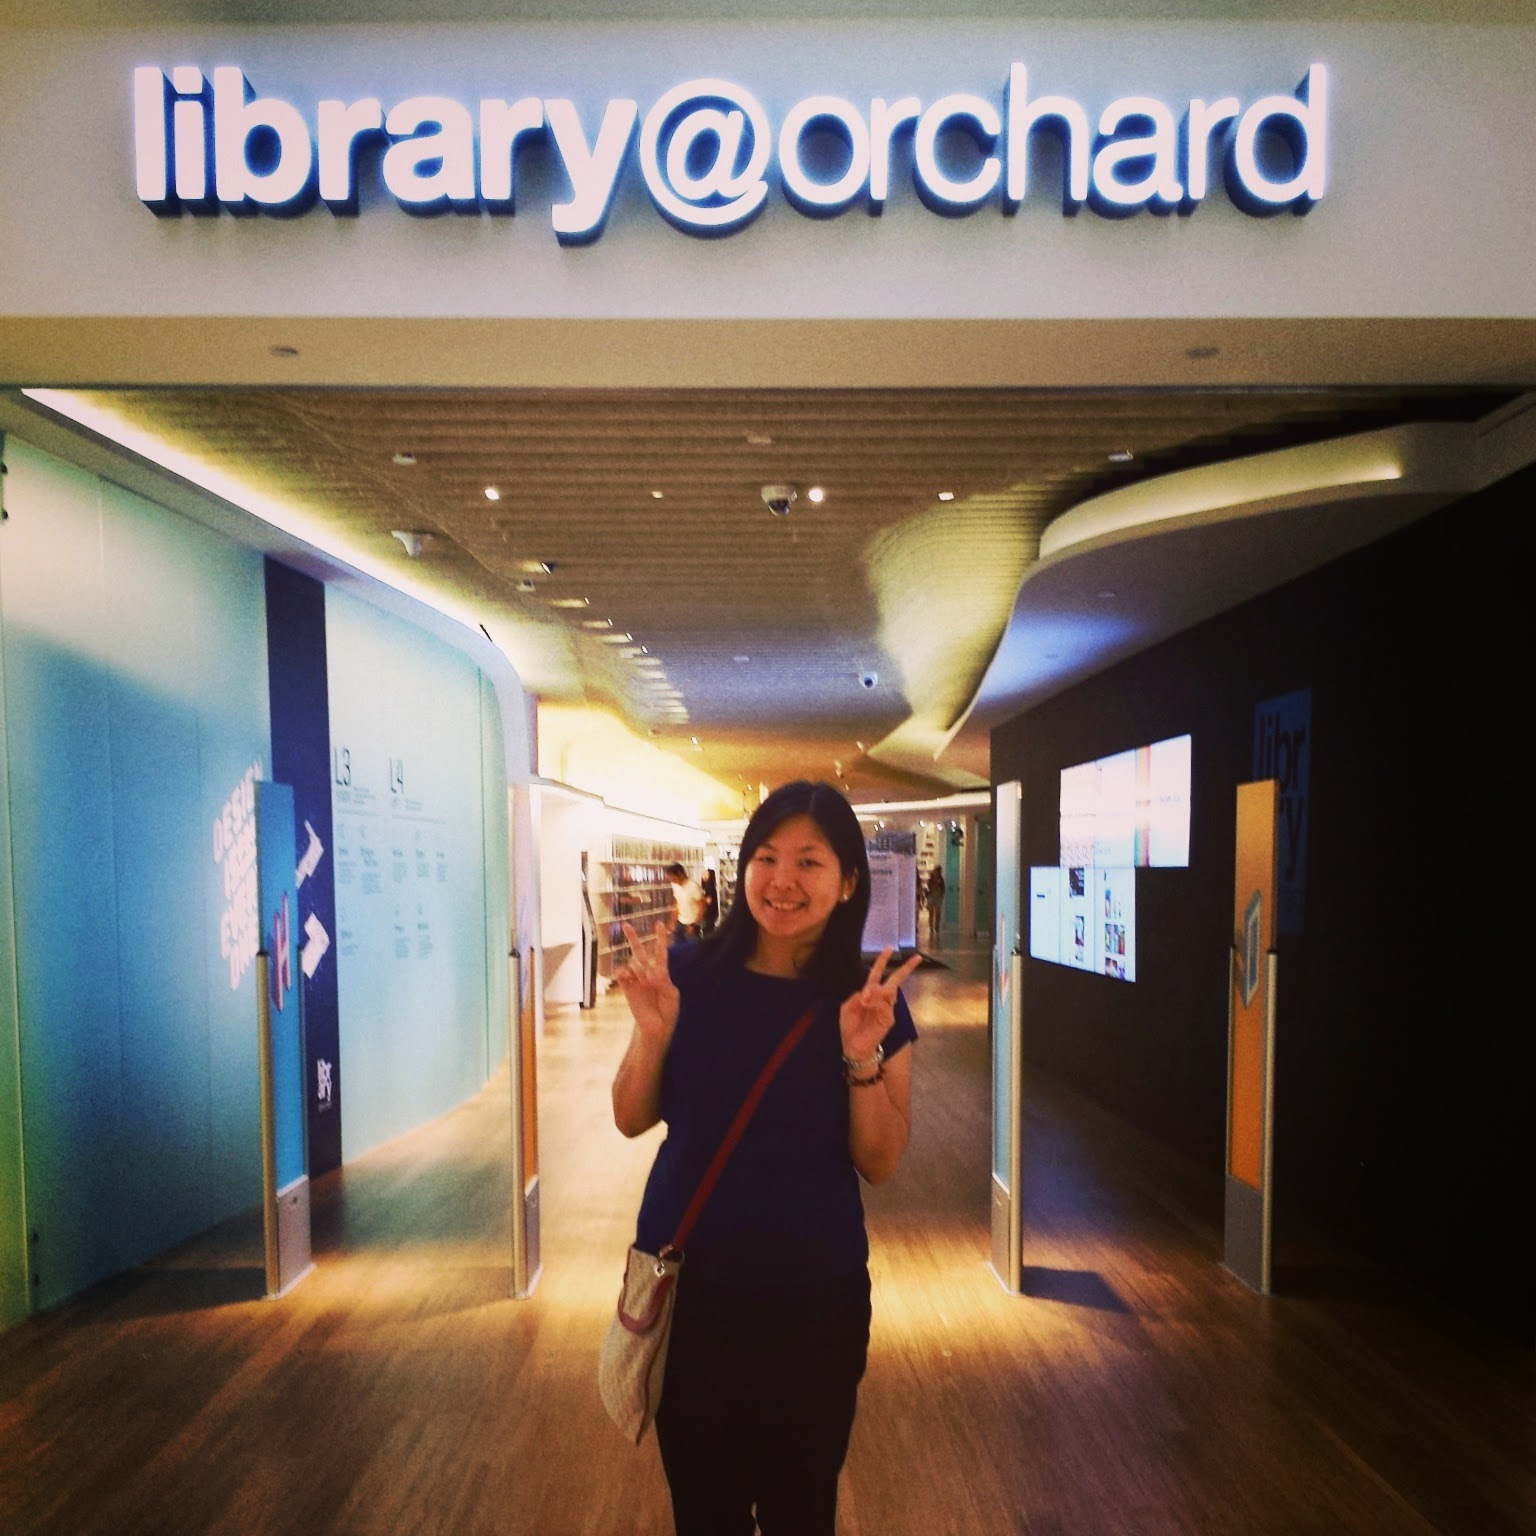 Overcome life: Library@Orchard